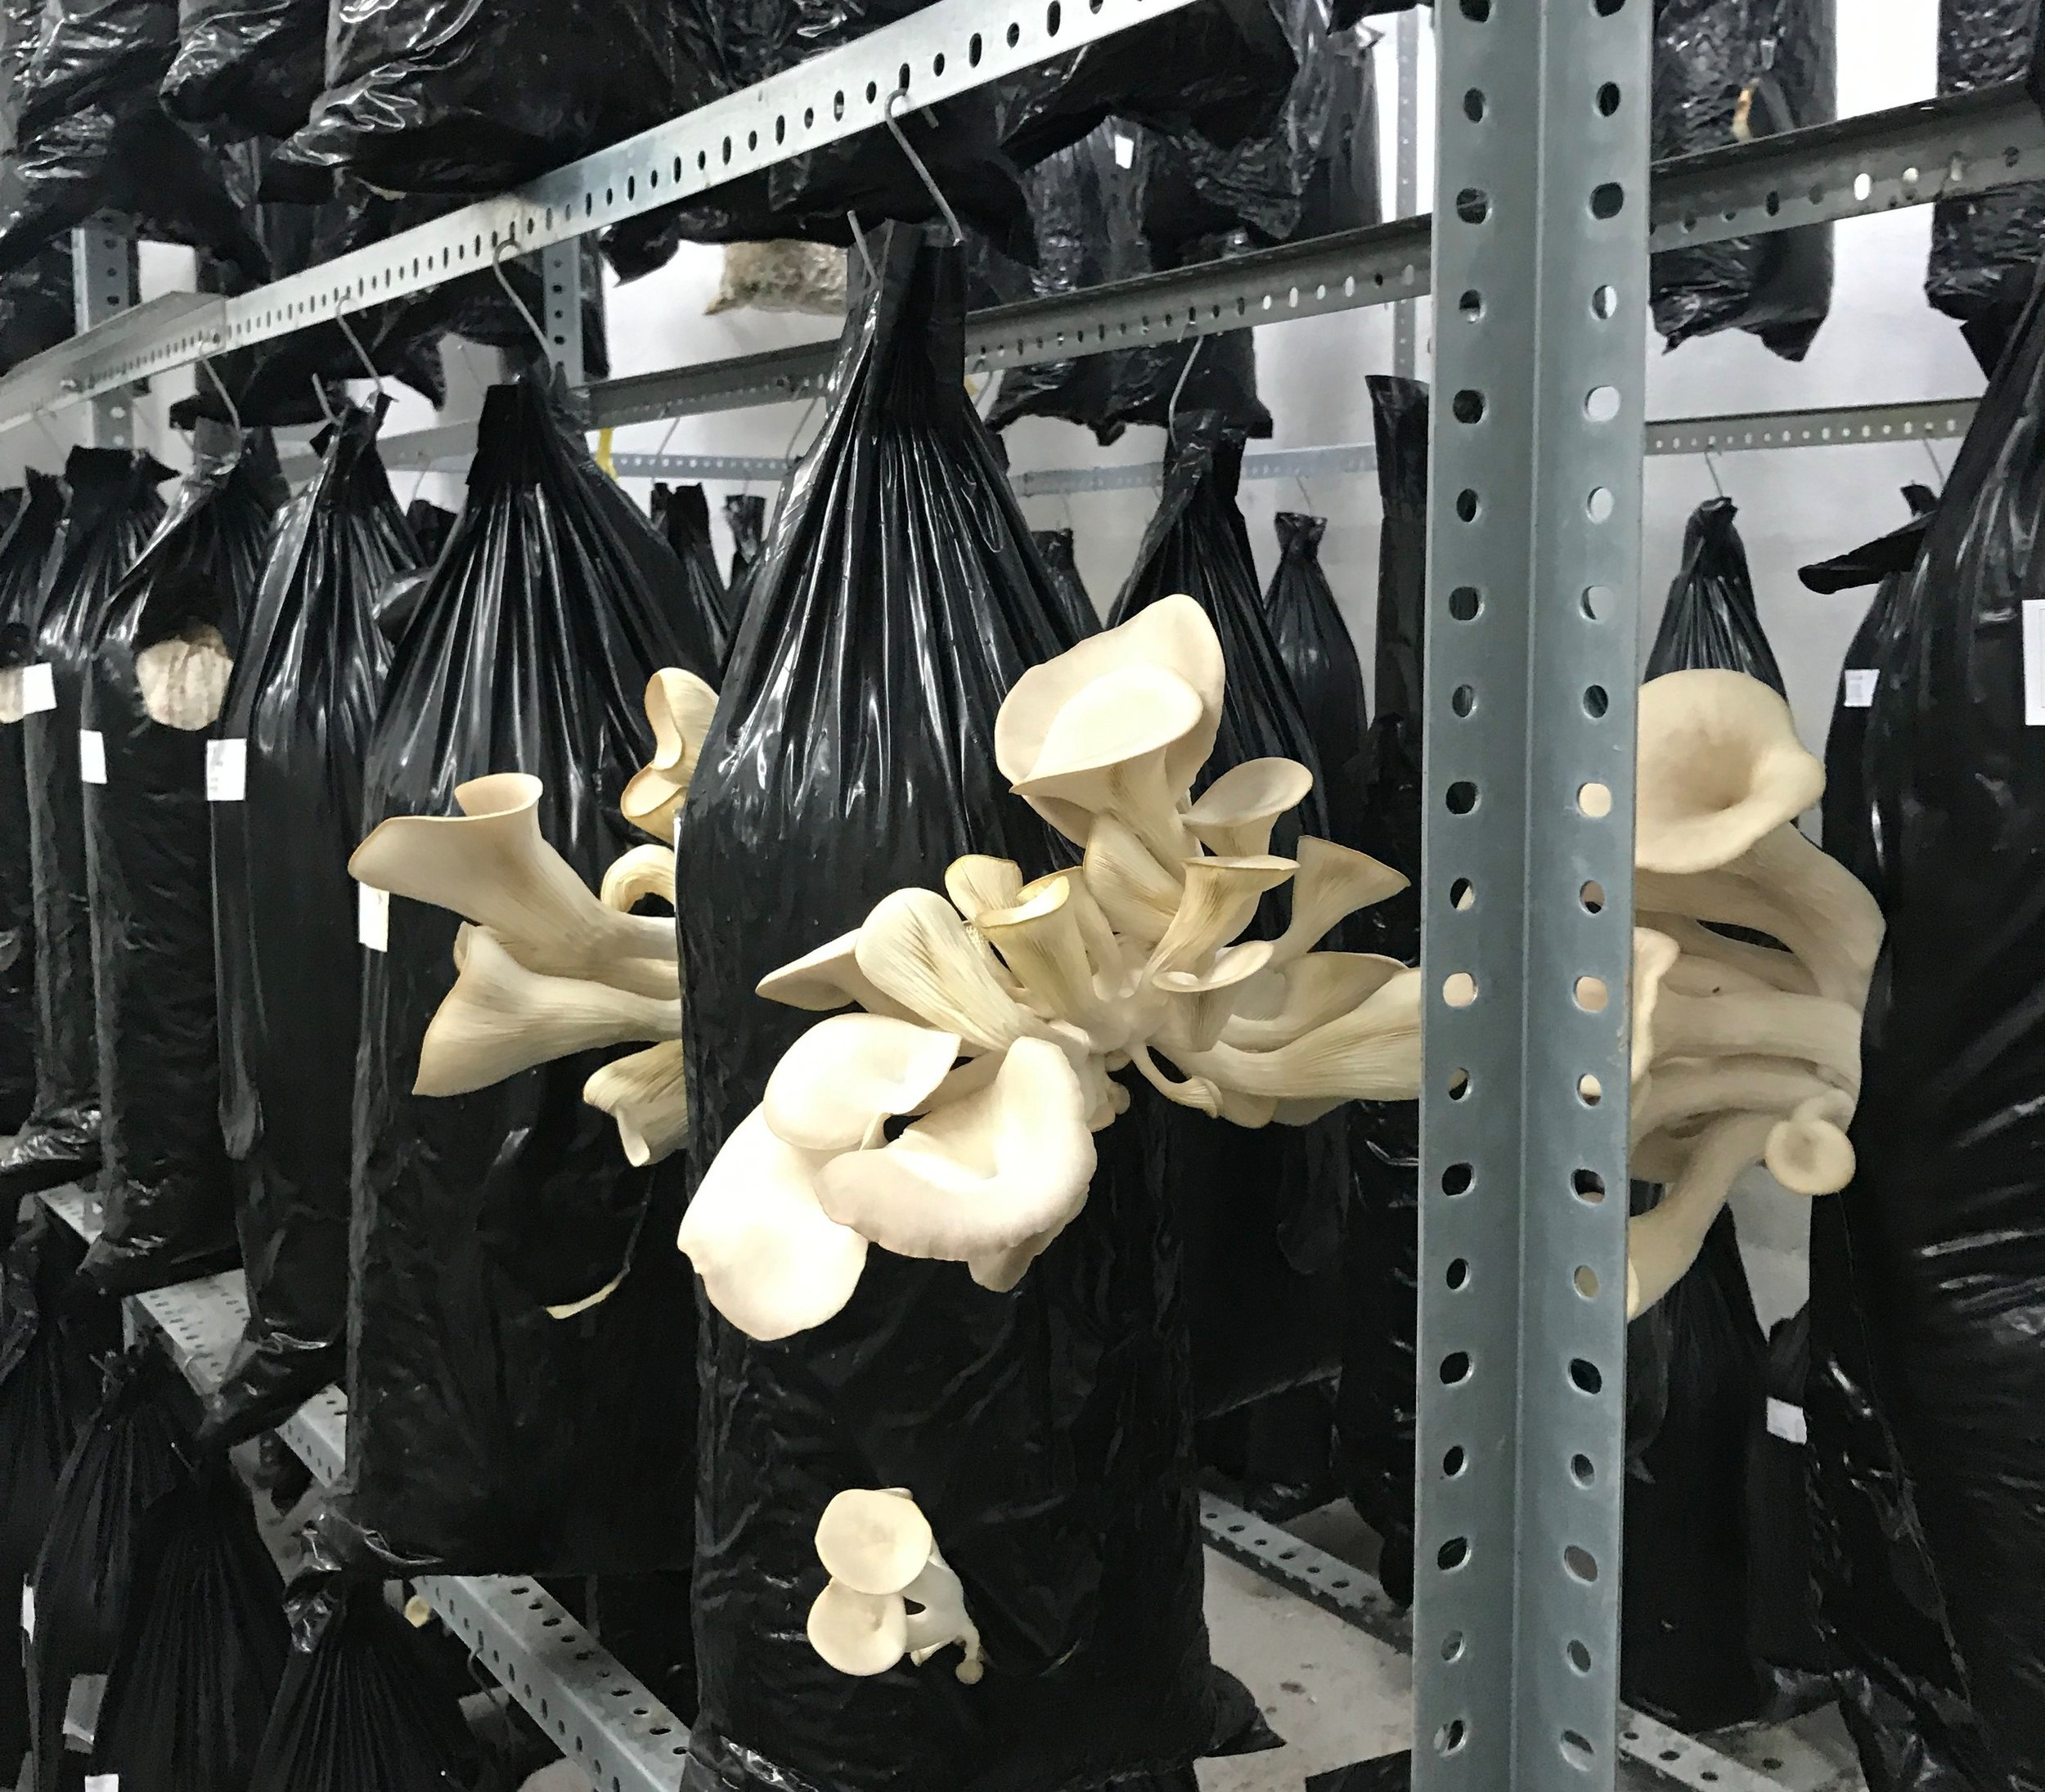 A row of oyster mushrooms in the indoor growing facility at Hut&Stiel